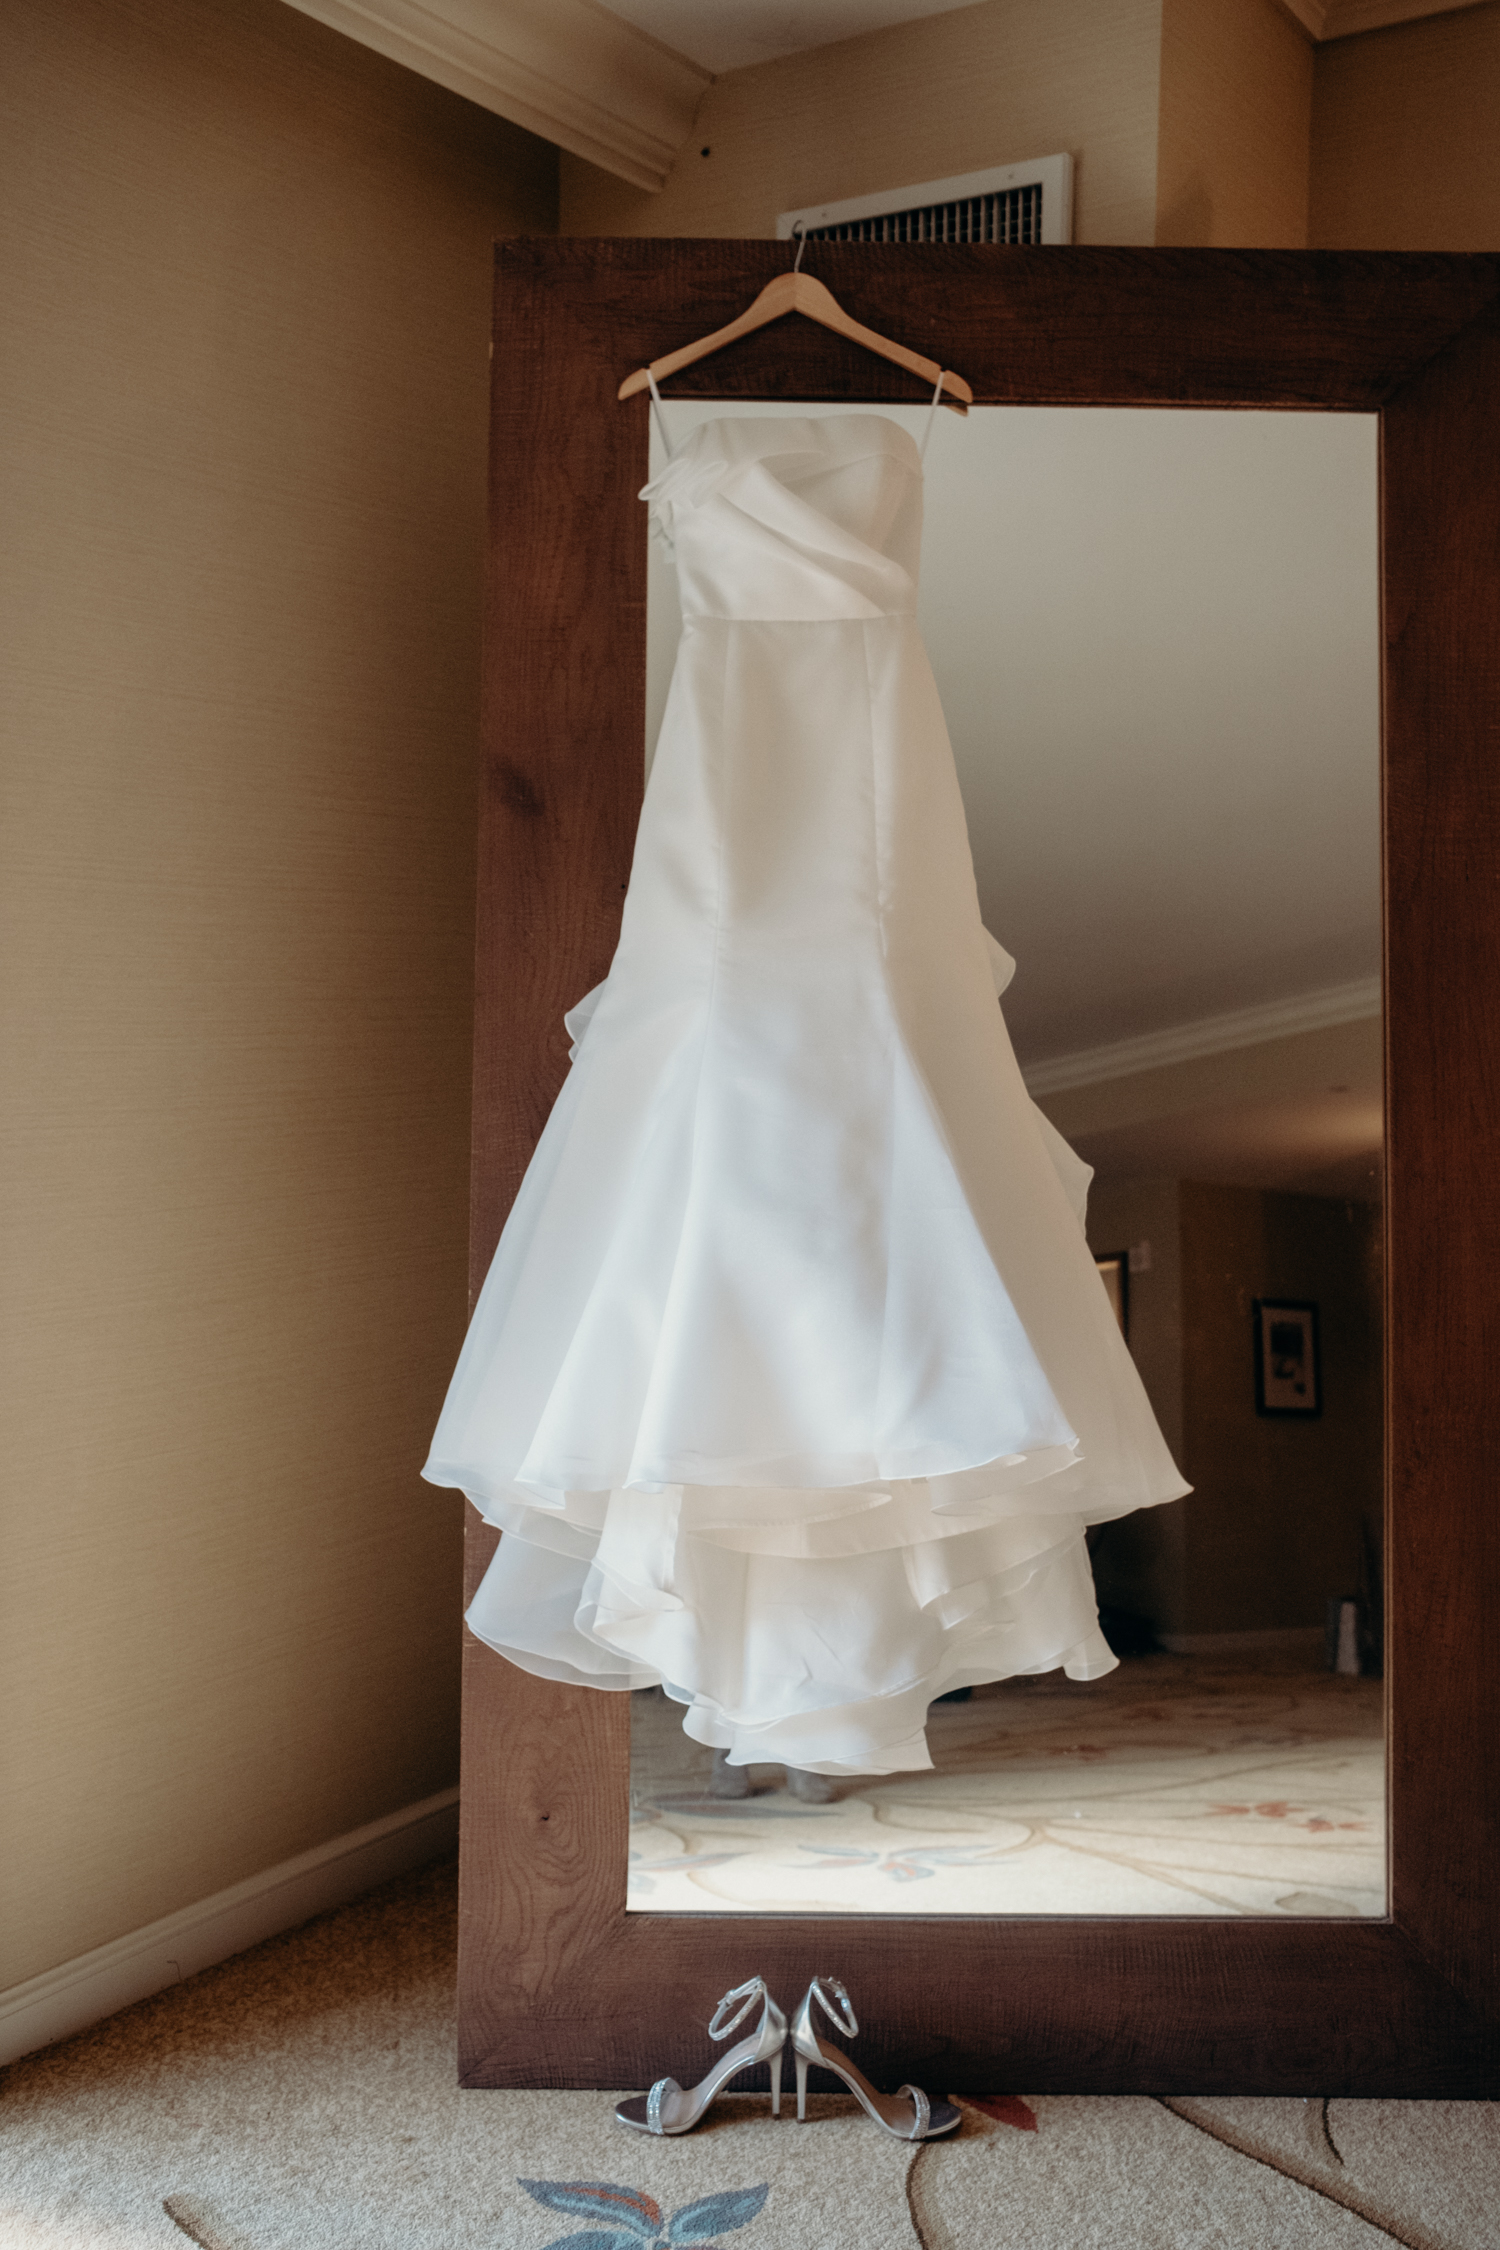 salamander resort bride's dress hanging on mirror